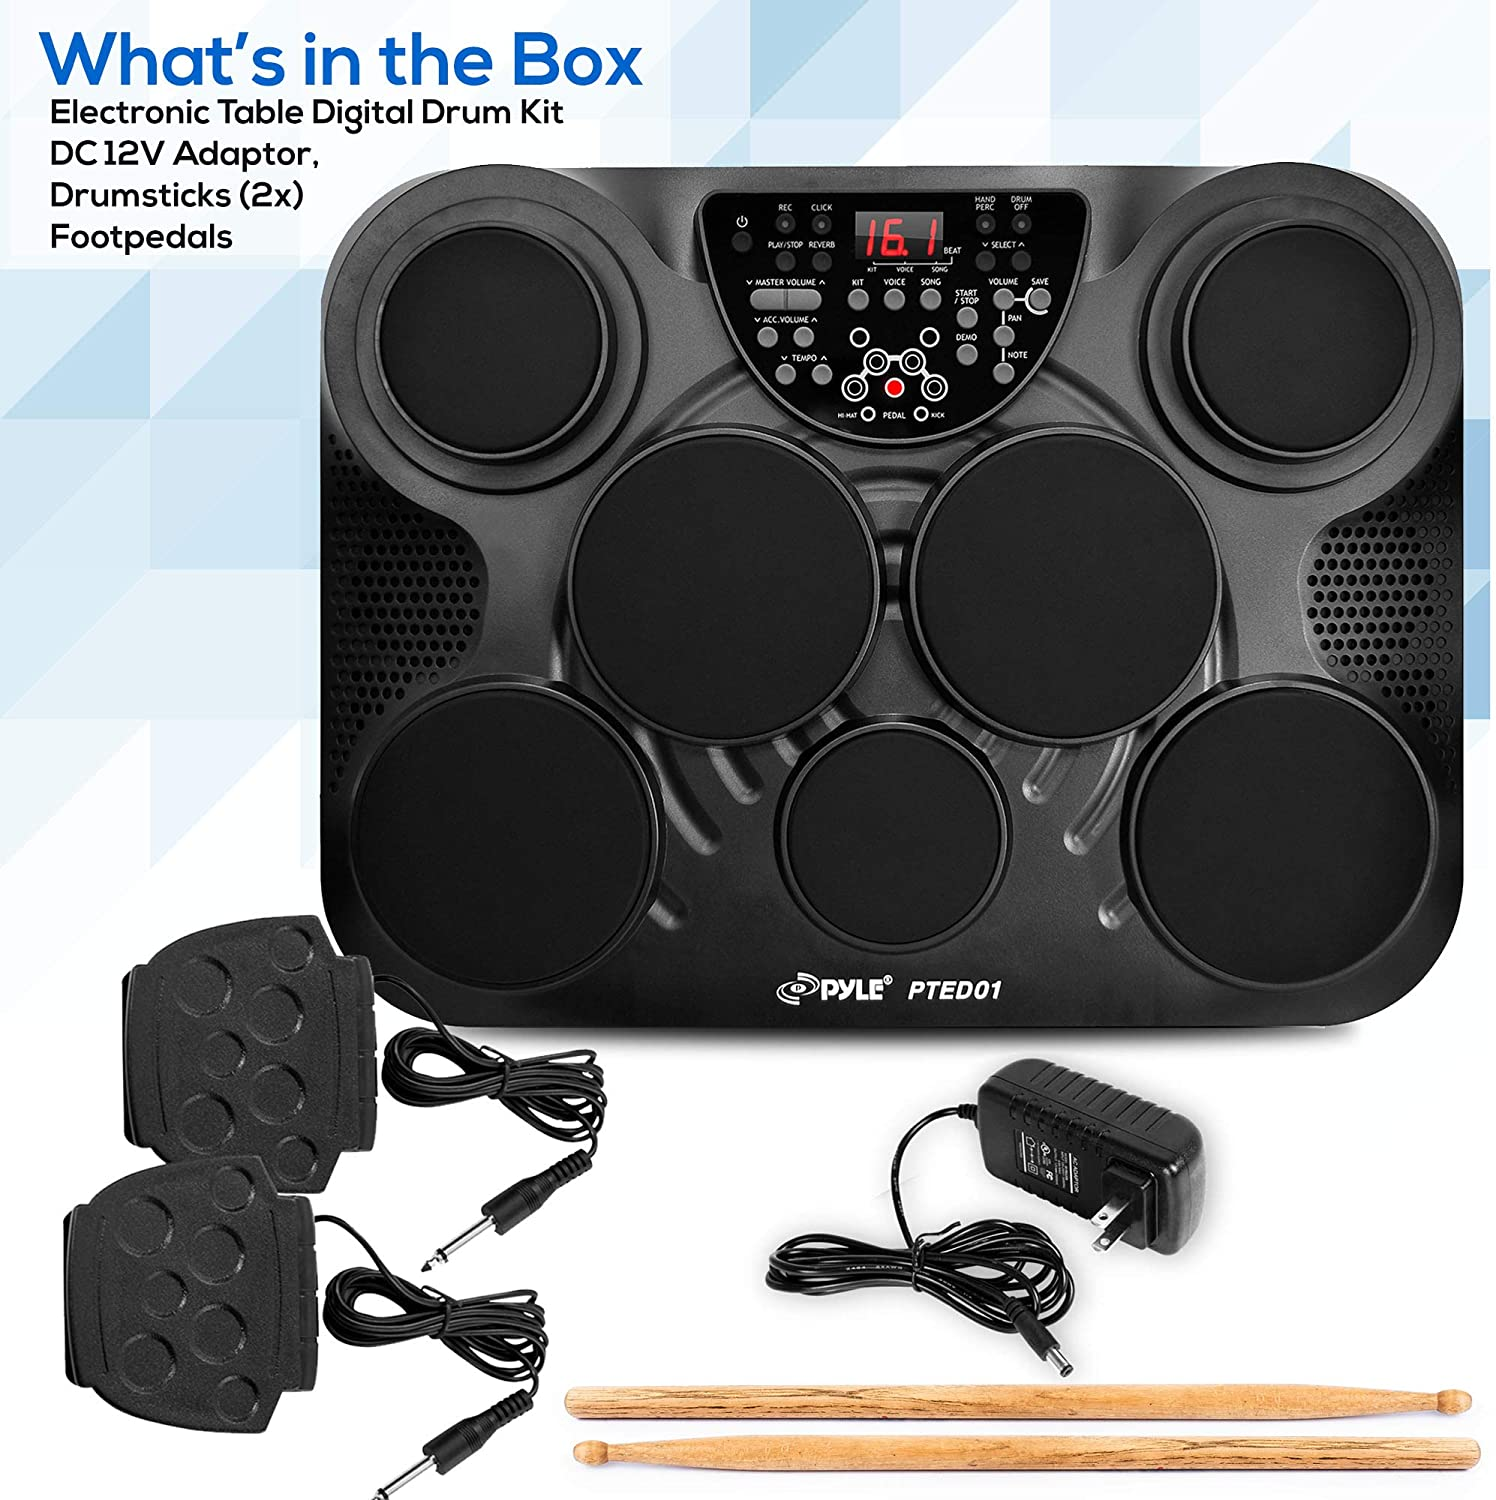 Pyle Portable Drums, Tabletop Drum Set, 7 Pad Digital Drum Kit, Touch...